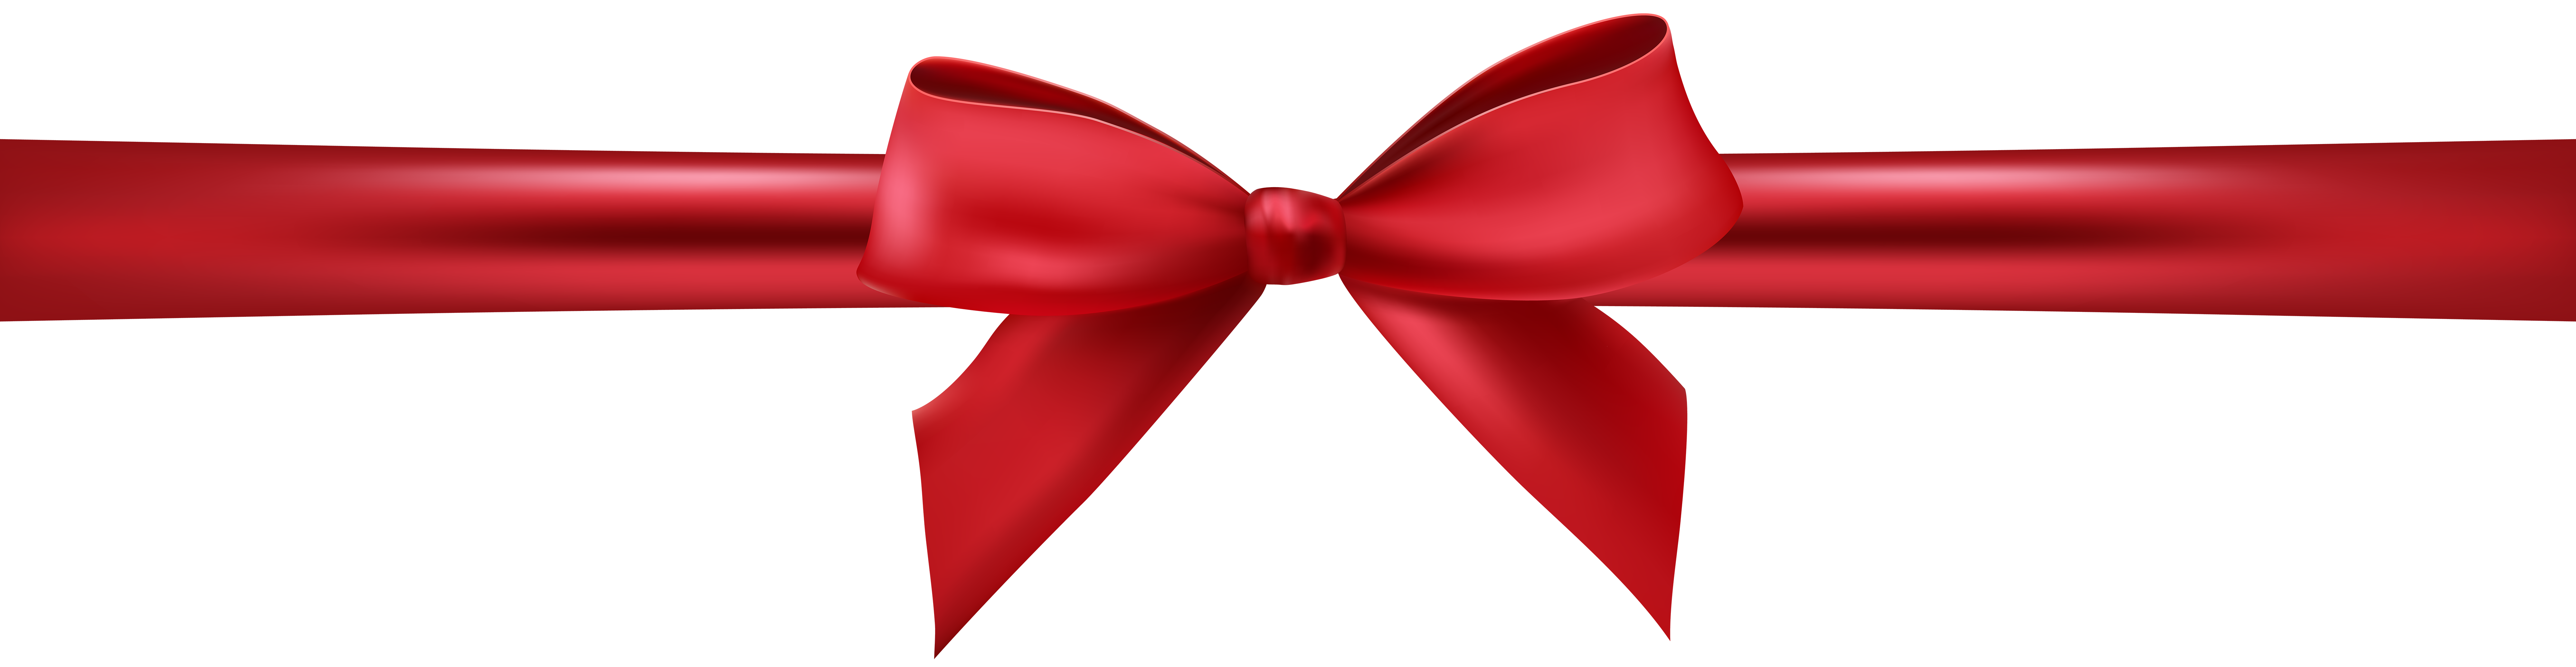 Red Bow with Ribbon PNG Clip Art Image.